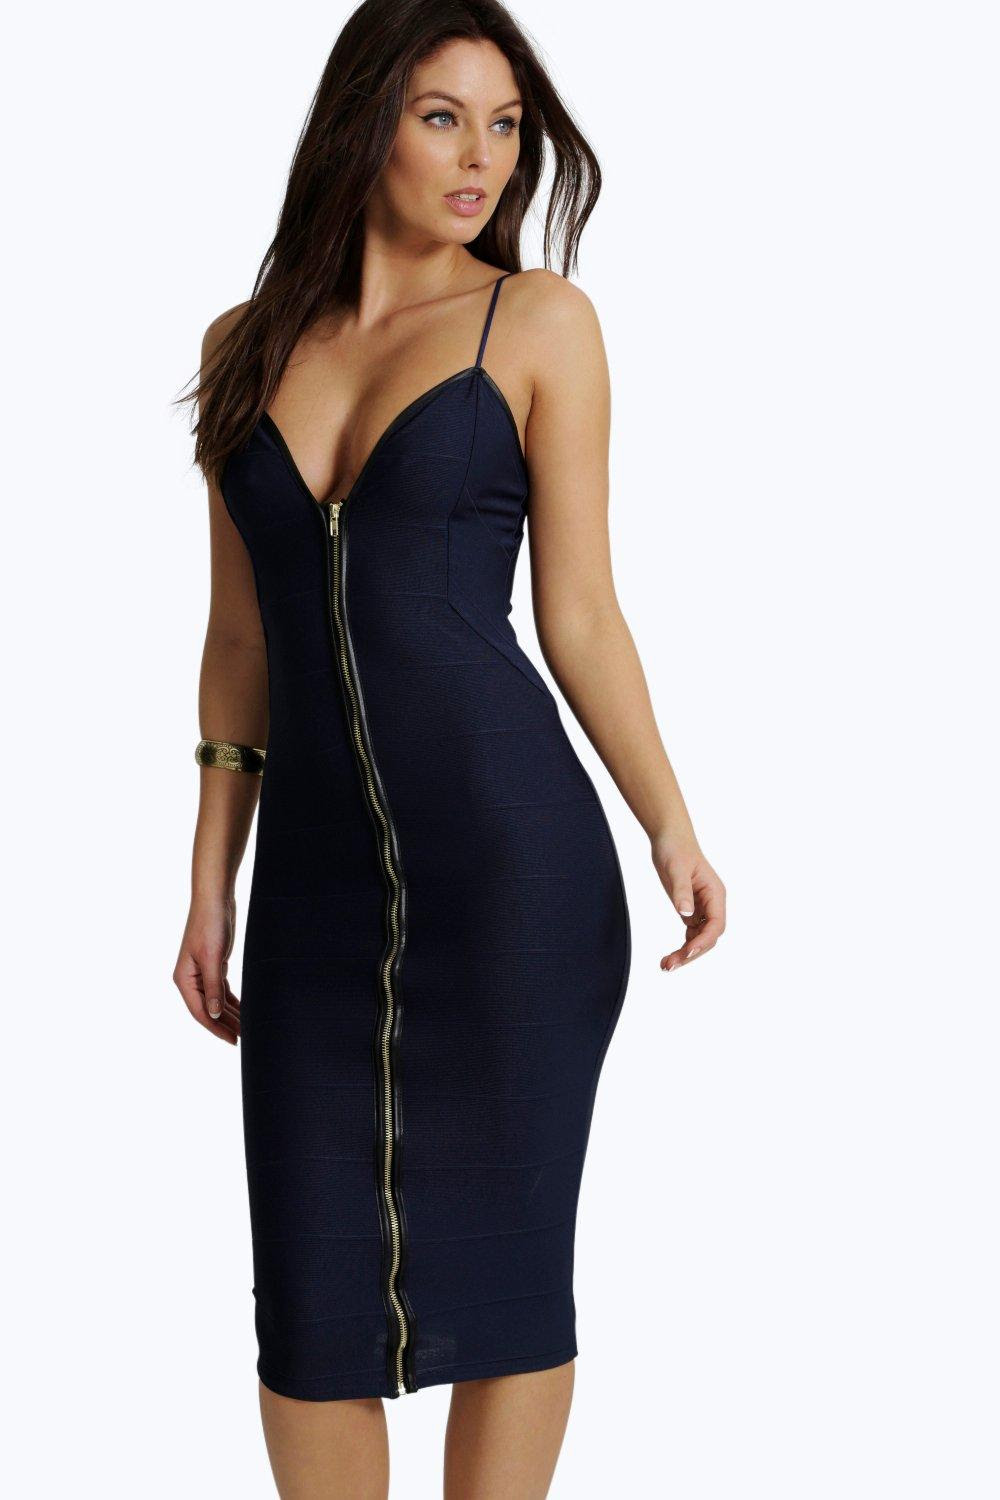 Boohoo bodycon dress sale outfitters subscription